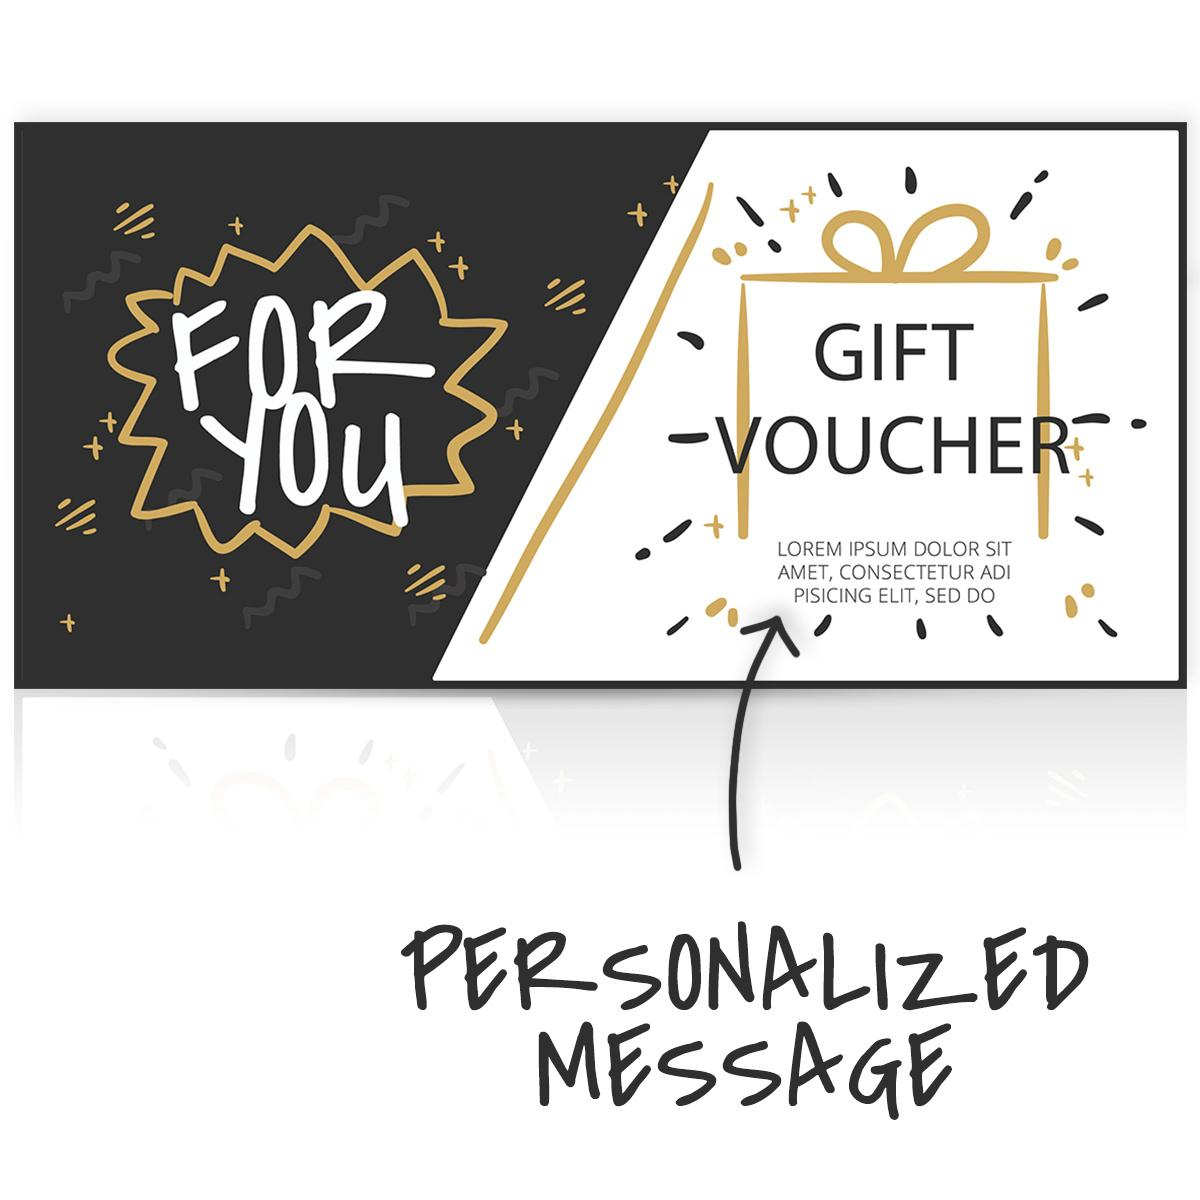 Gift Voucher with personal msg